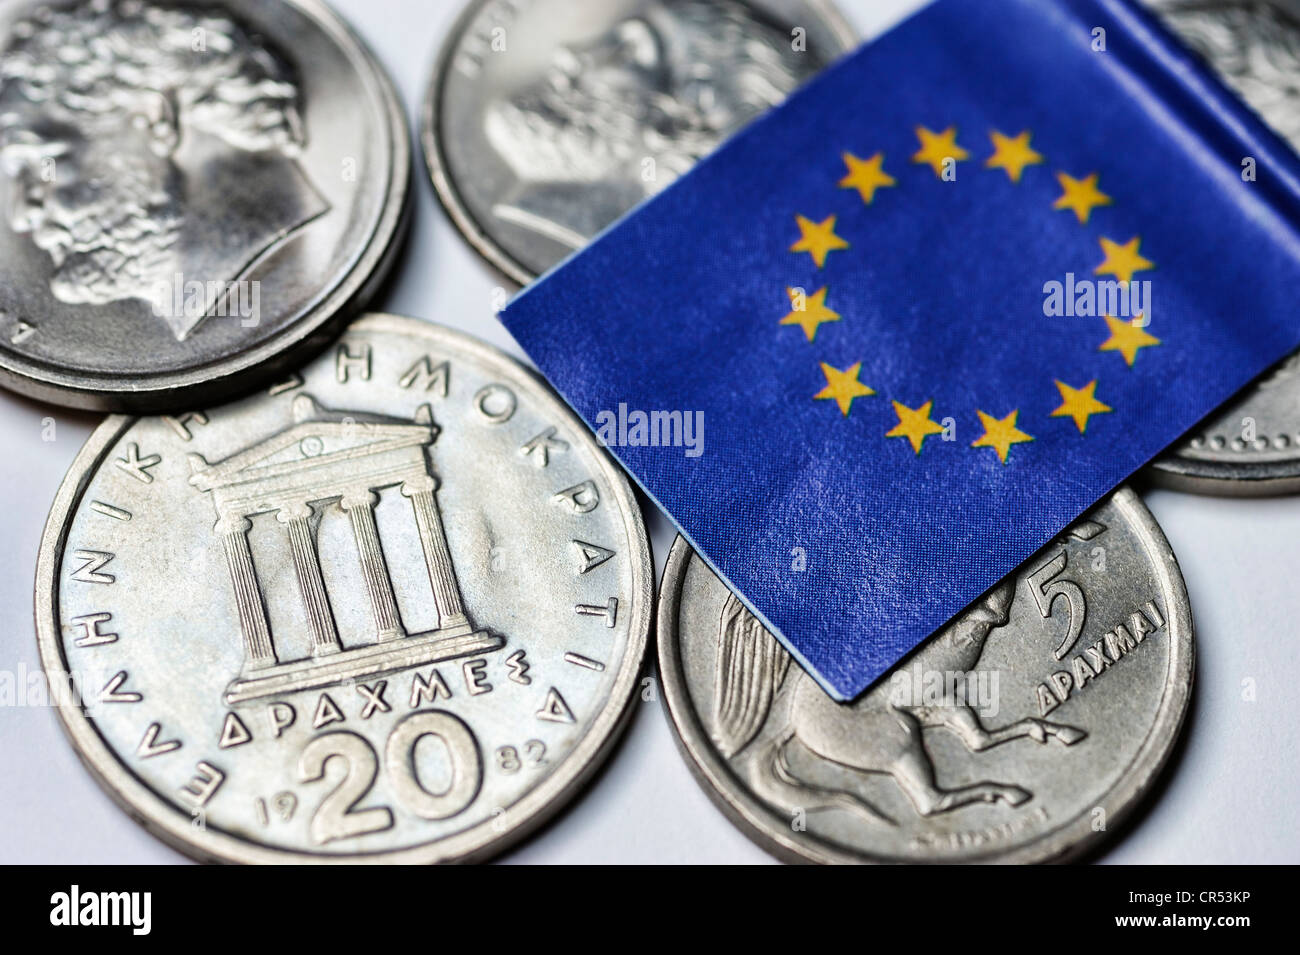 Greek drachmas with the EU flag, symbolic image of the possible discontinuation of the euro in Greece - Stock Image